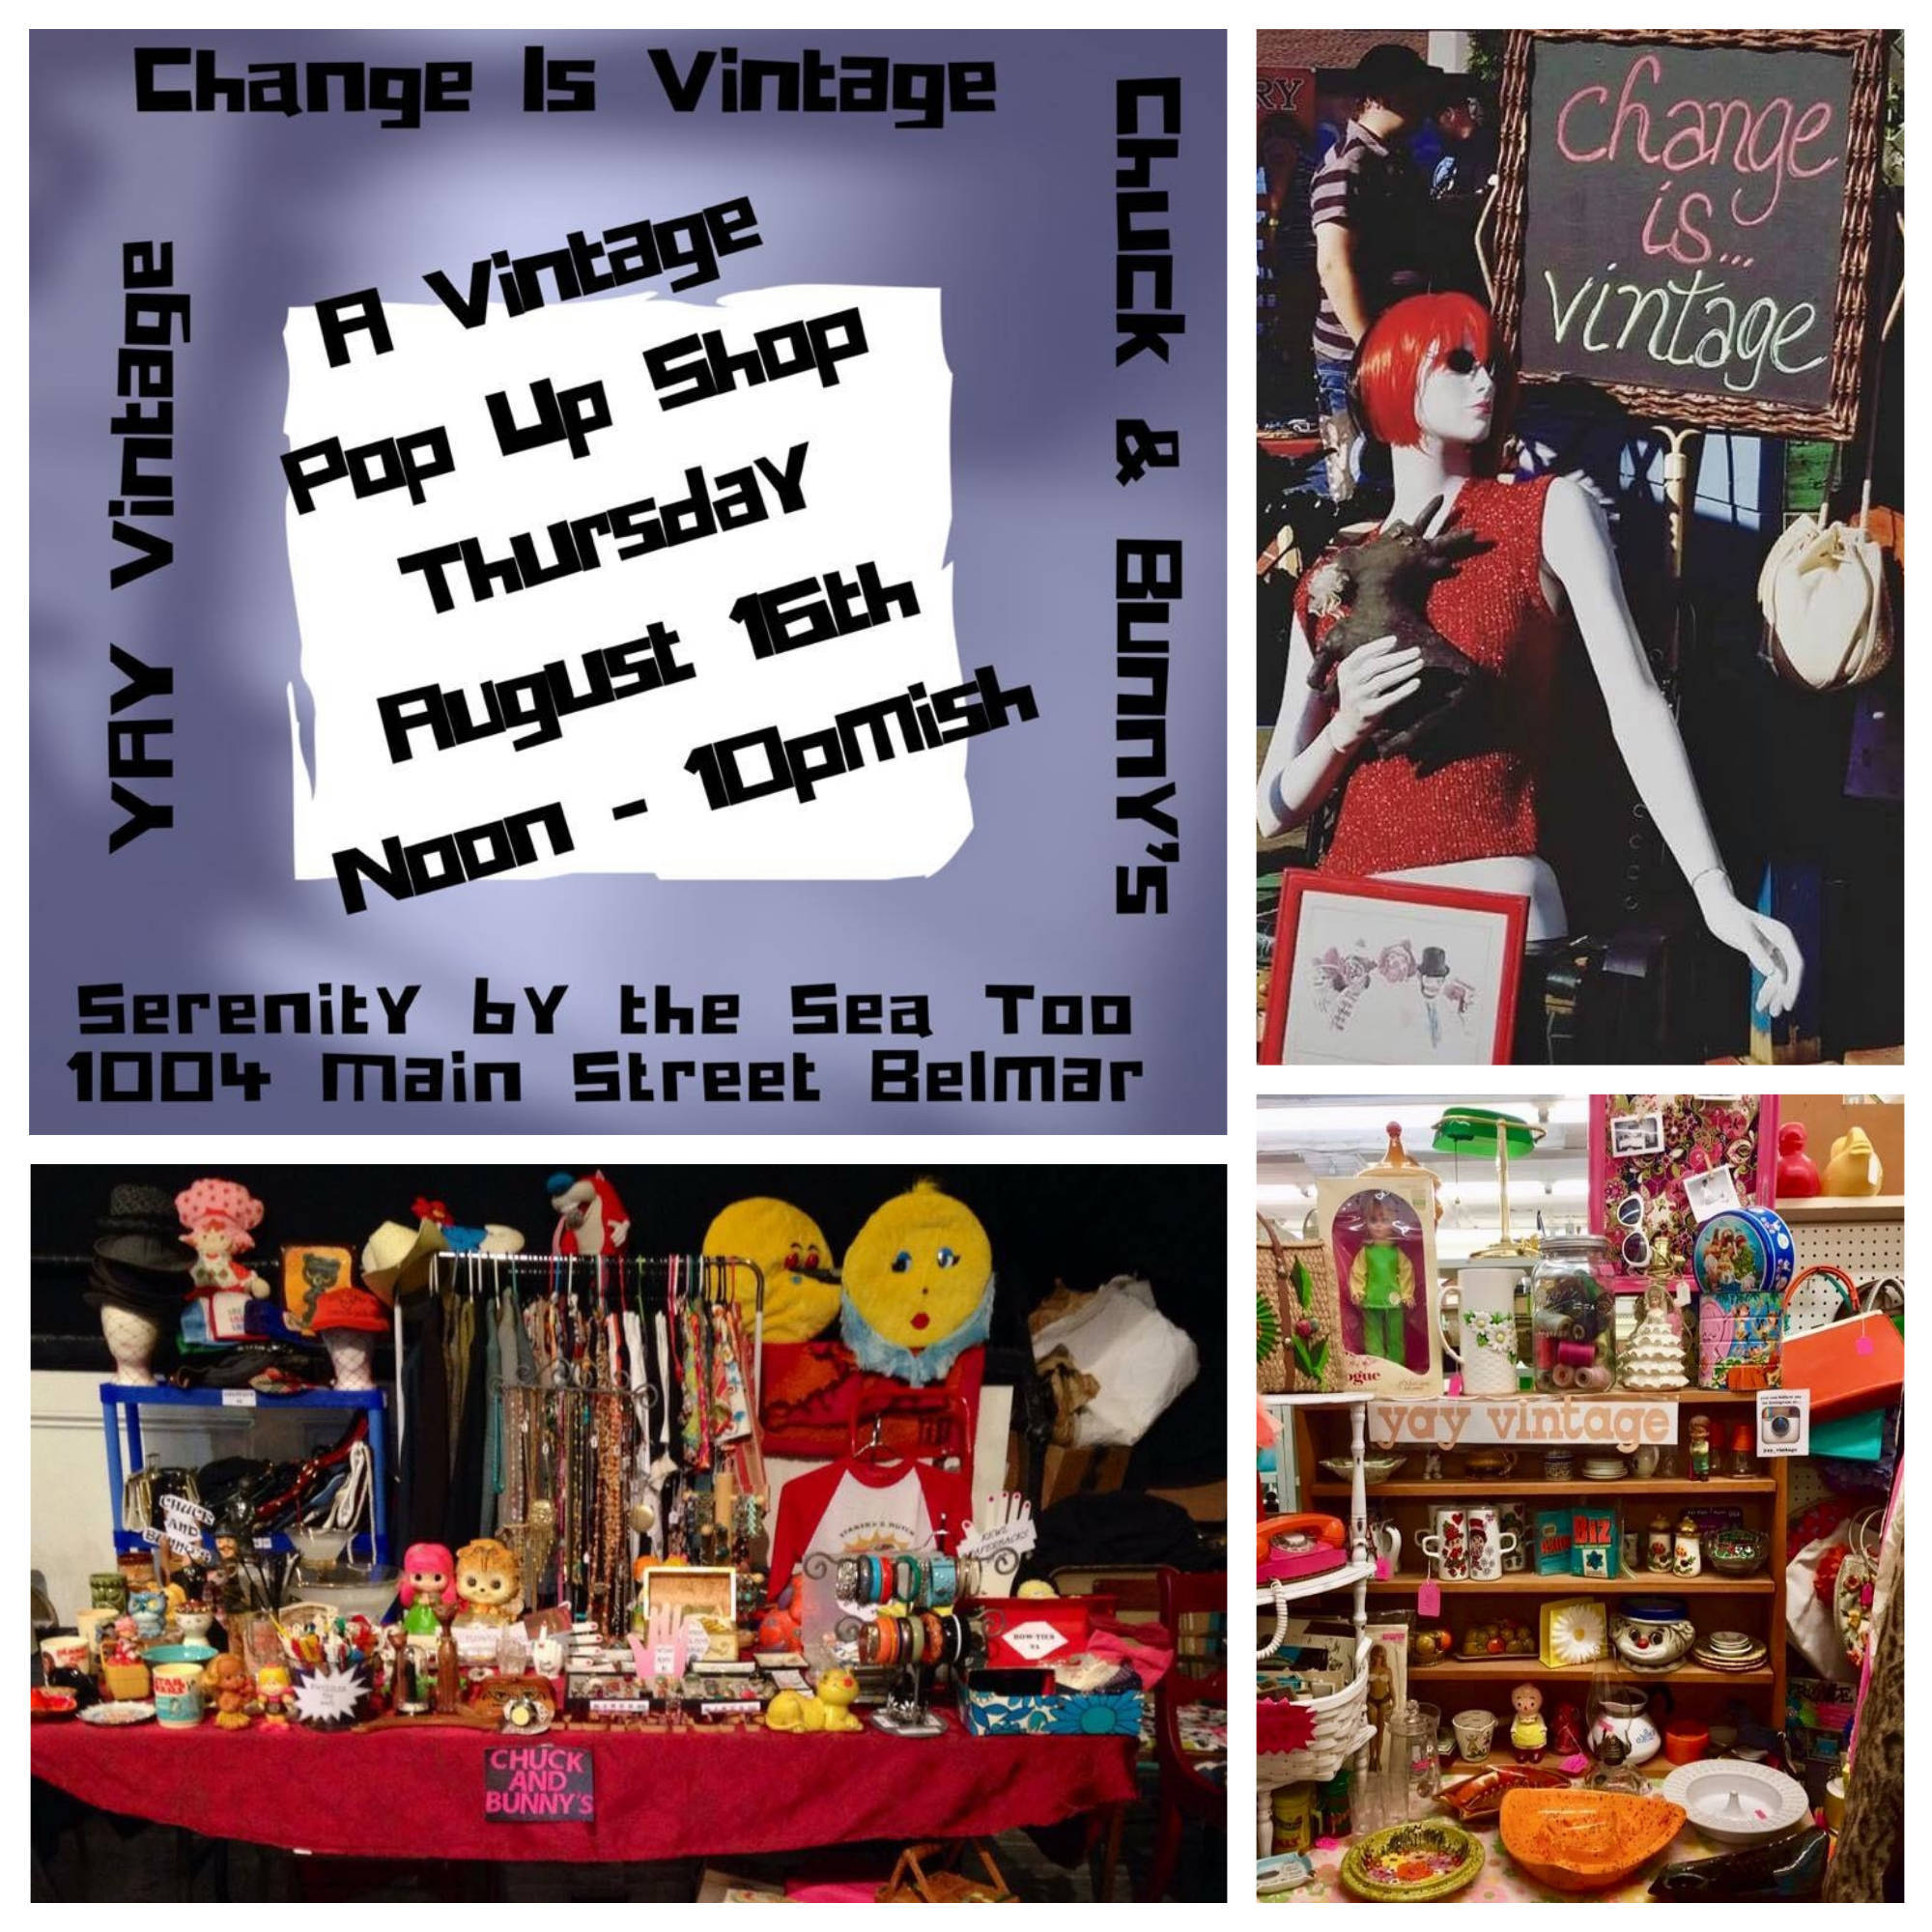 Vintage Lovers' Paradise: Popping Today at Serenity by the Sea too